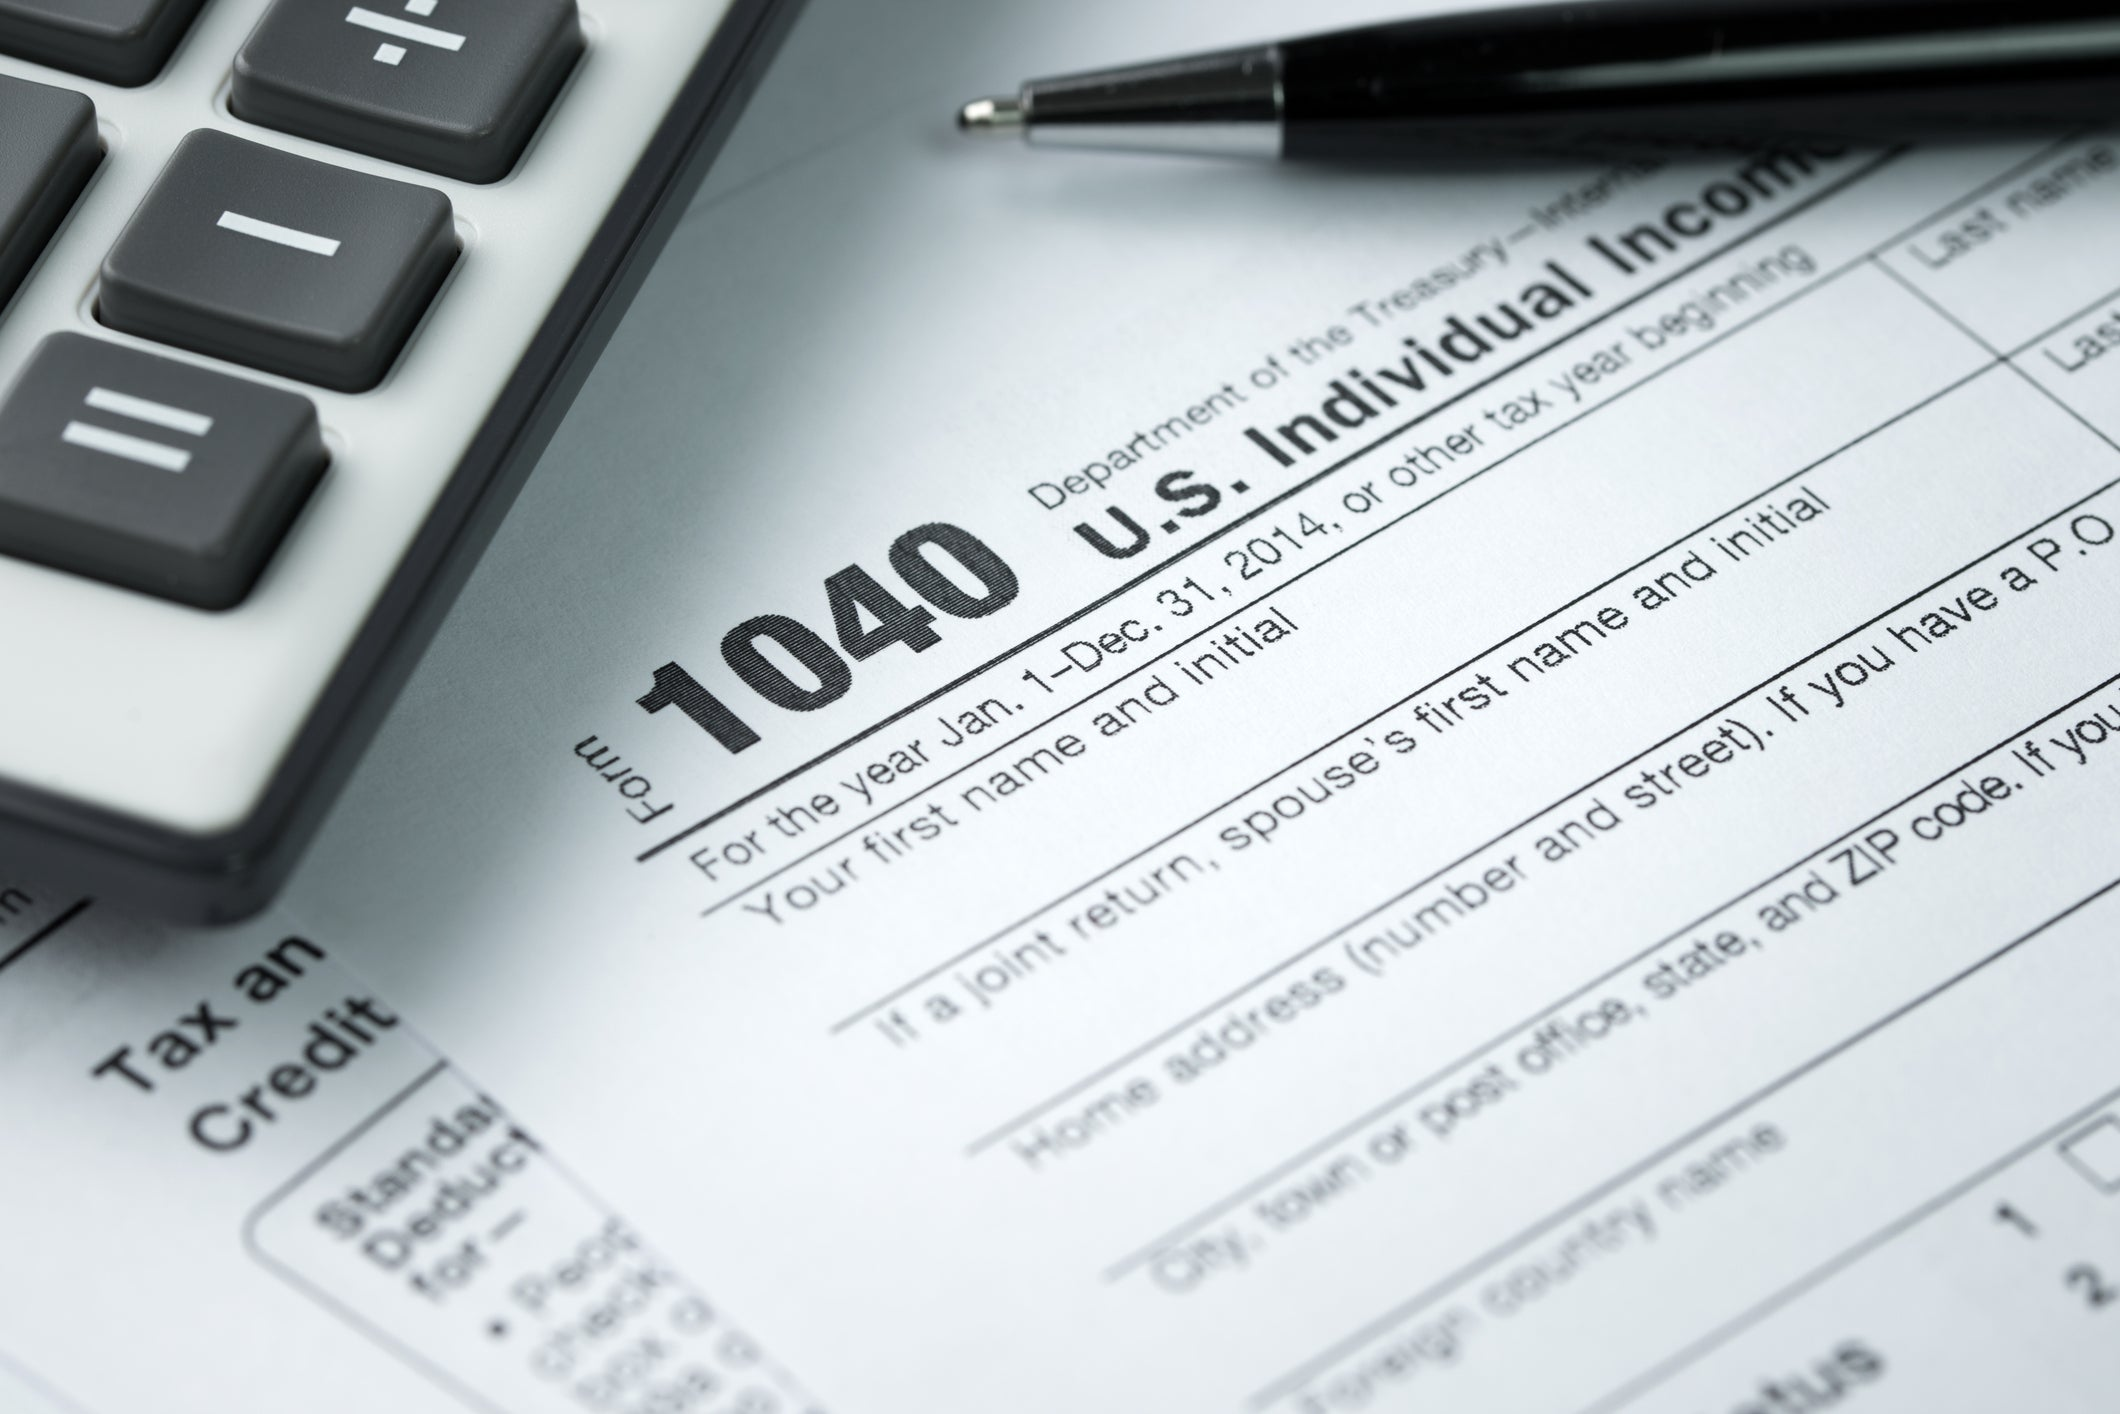 Great News for Taxpayers: You'll Soon Be Able to File Amended Returns Online | The Motley Fool